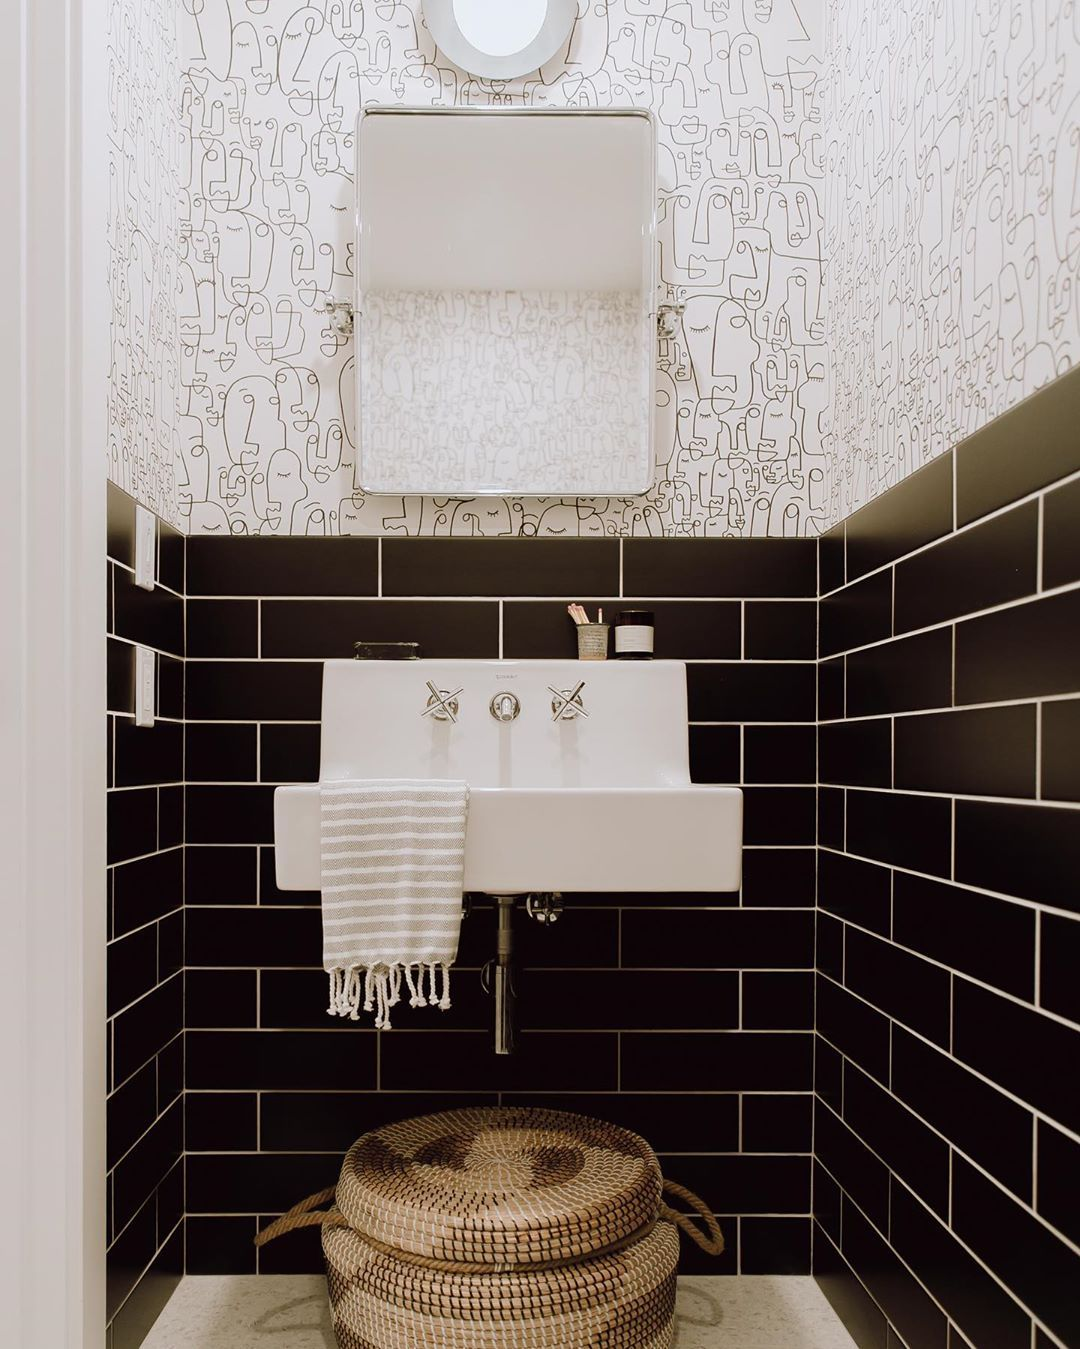 You Guys I M So Incredibly Humbled And Excited To Have This Little Powder Room Project Of Mine In Black Subway Tiles Diy Bathroom Decor Modern Master Bathroom